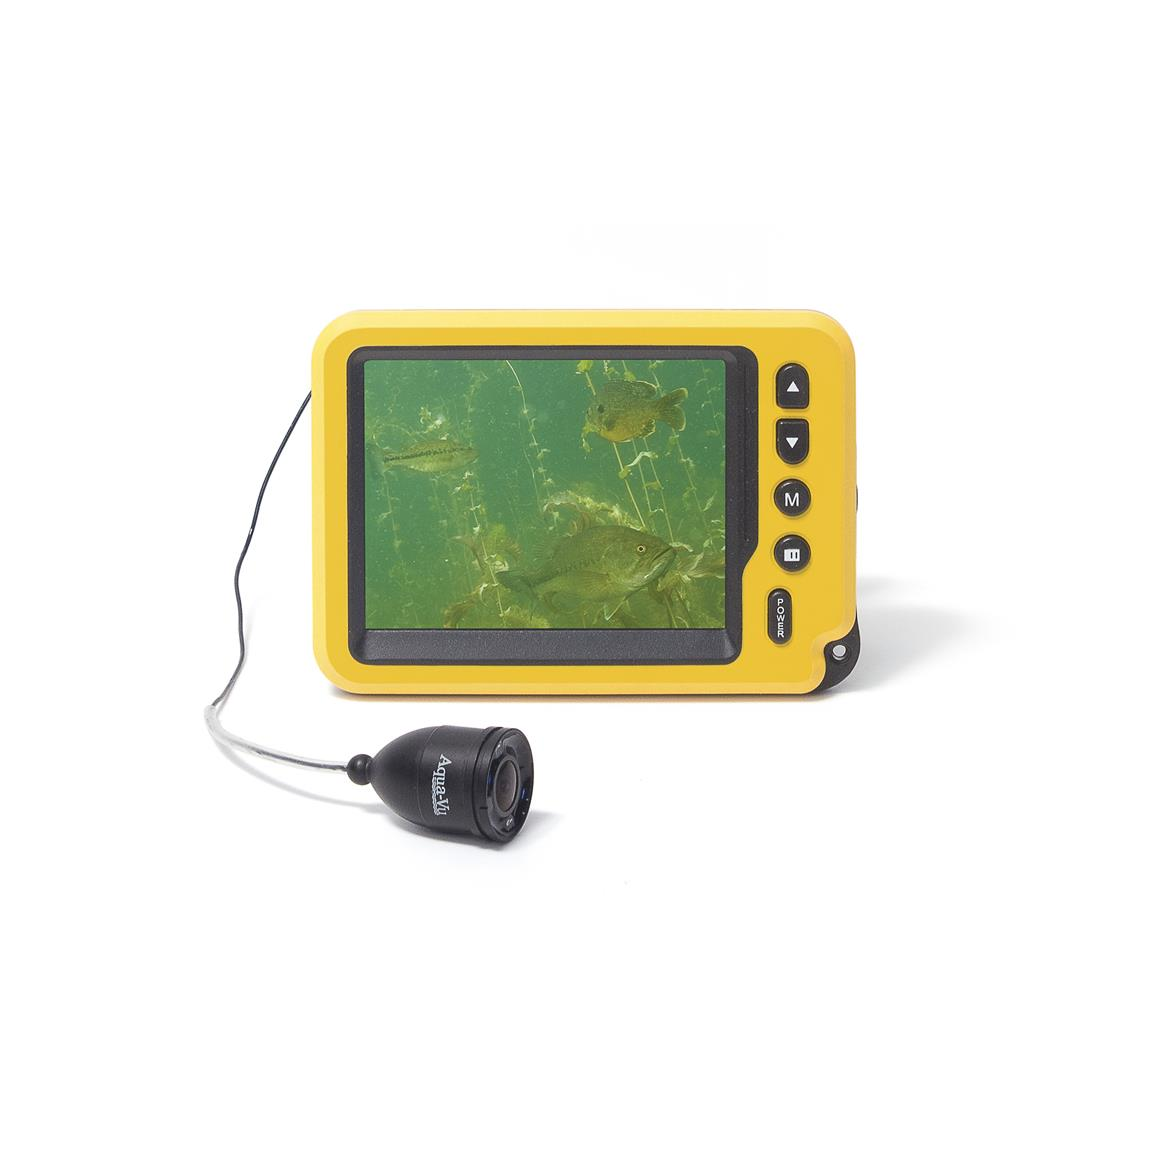 Humminbird piranhamax 4 pt sonar fish finder 678886 for Piranha fish finder